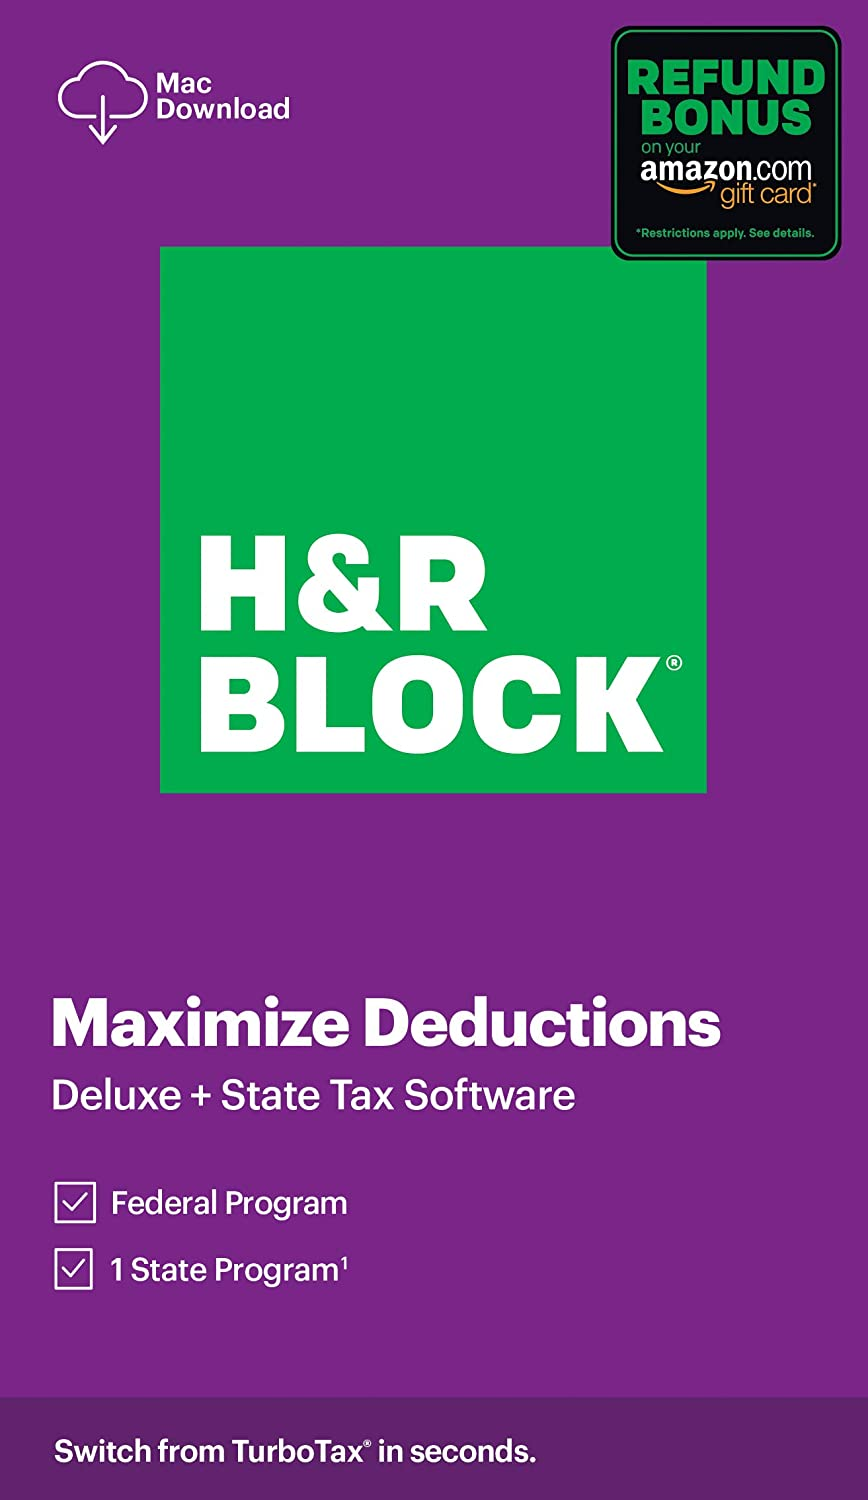 H&R Block Tax Software Deluxe + State 2020 with Refund Bonus Offer (Amazon Exclusive) [Mac Download]